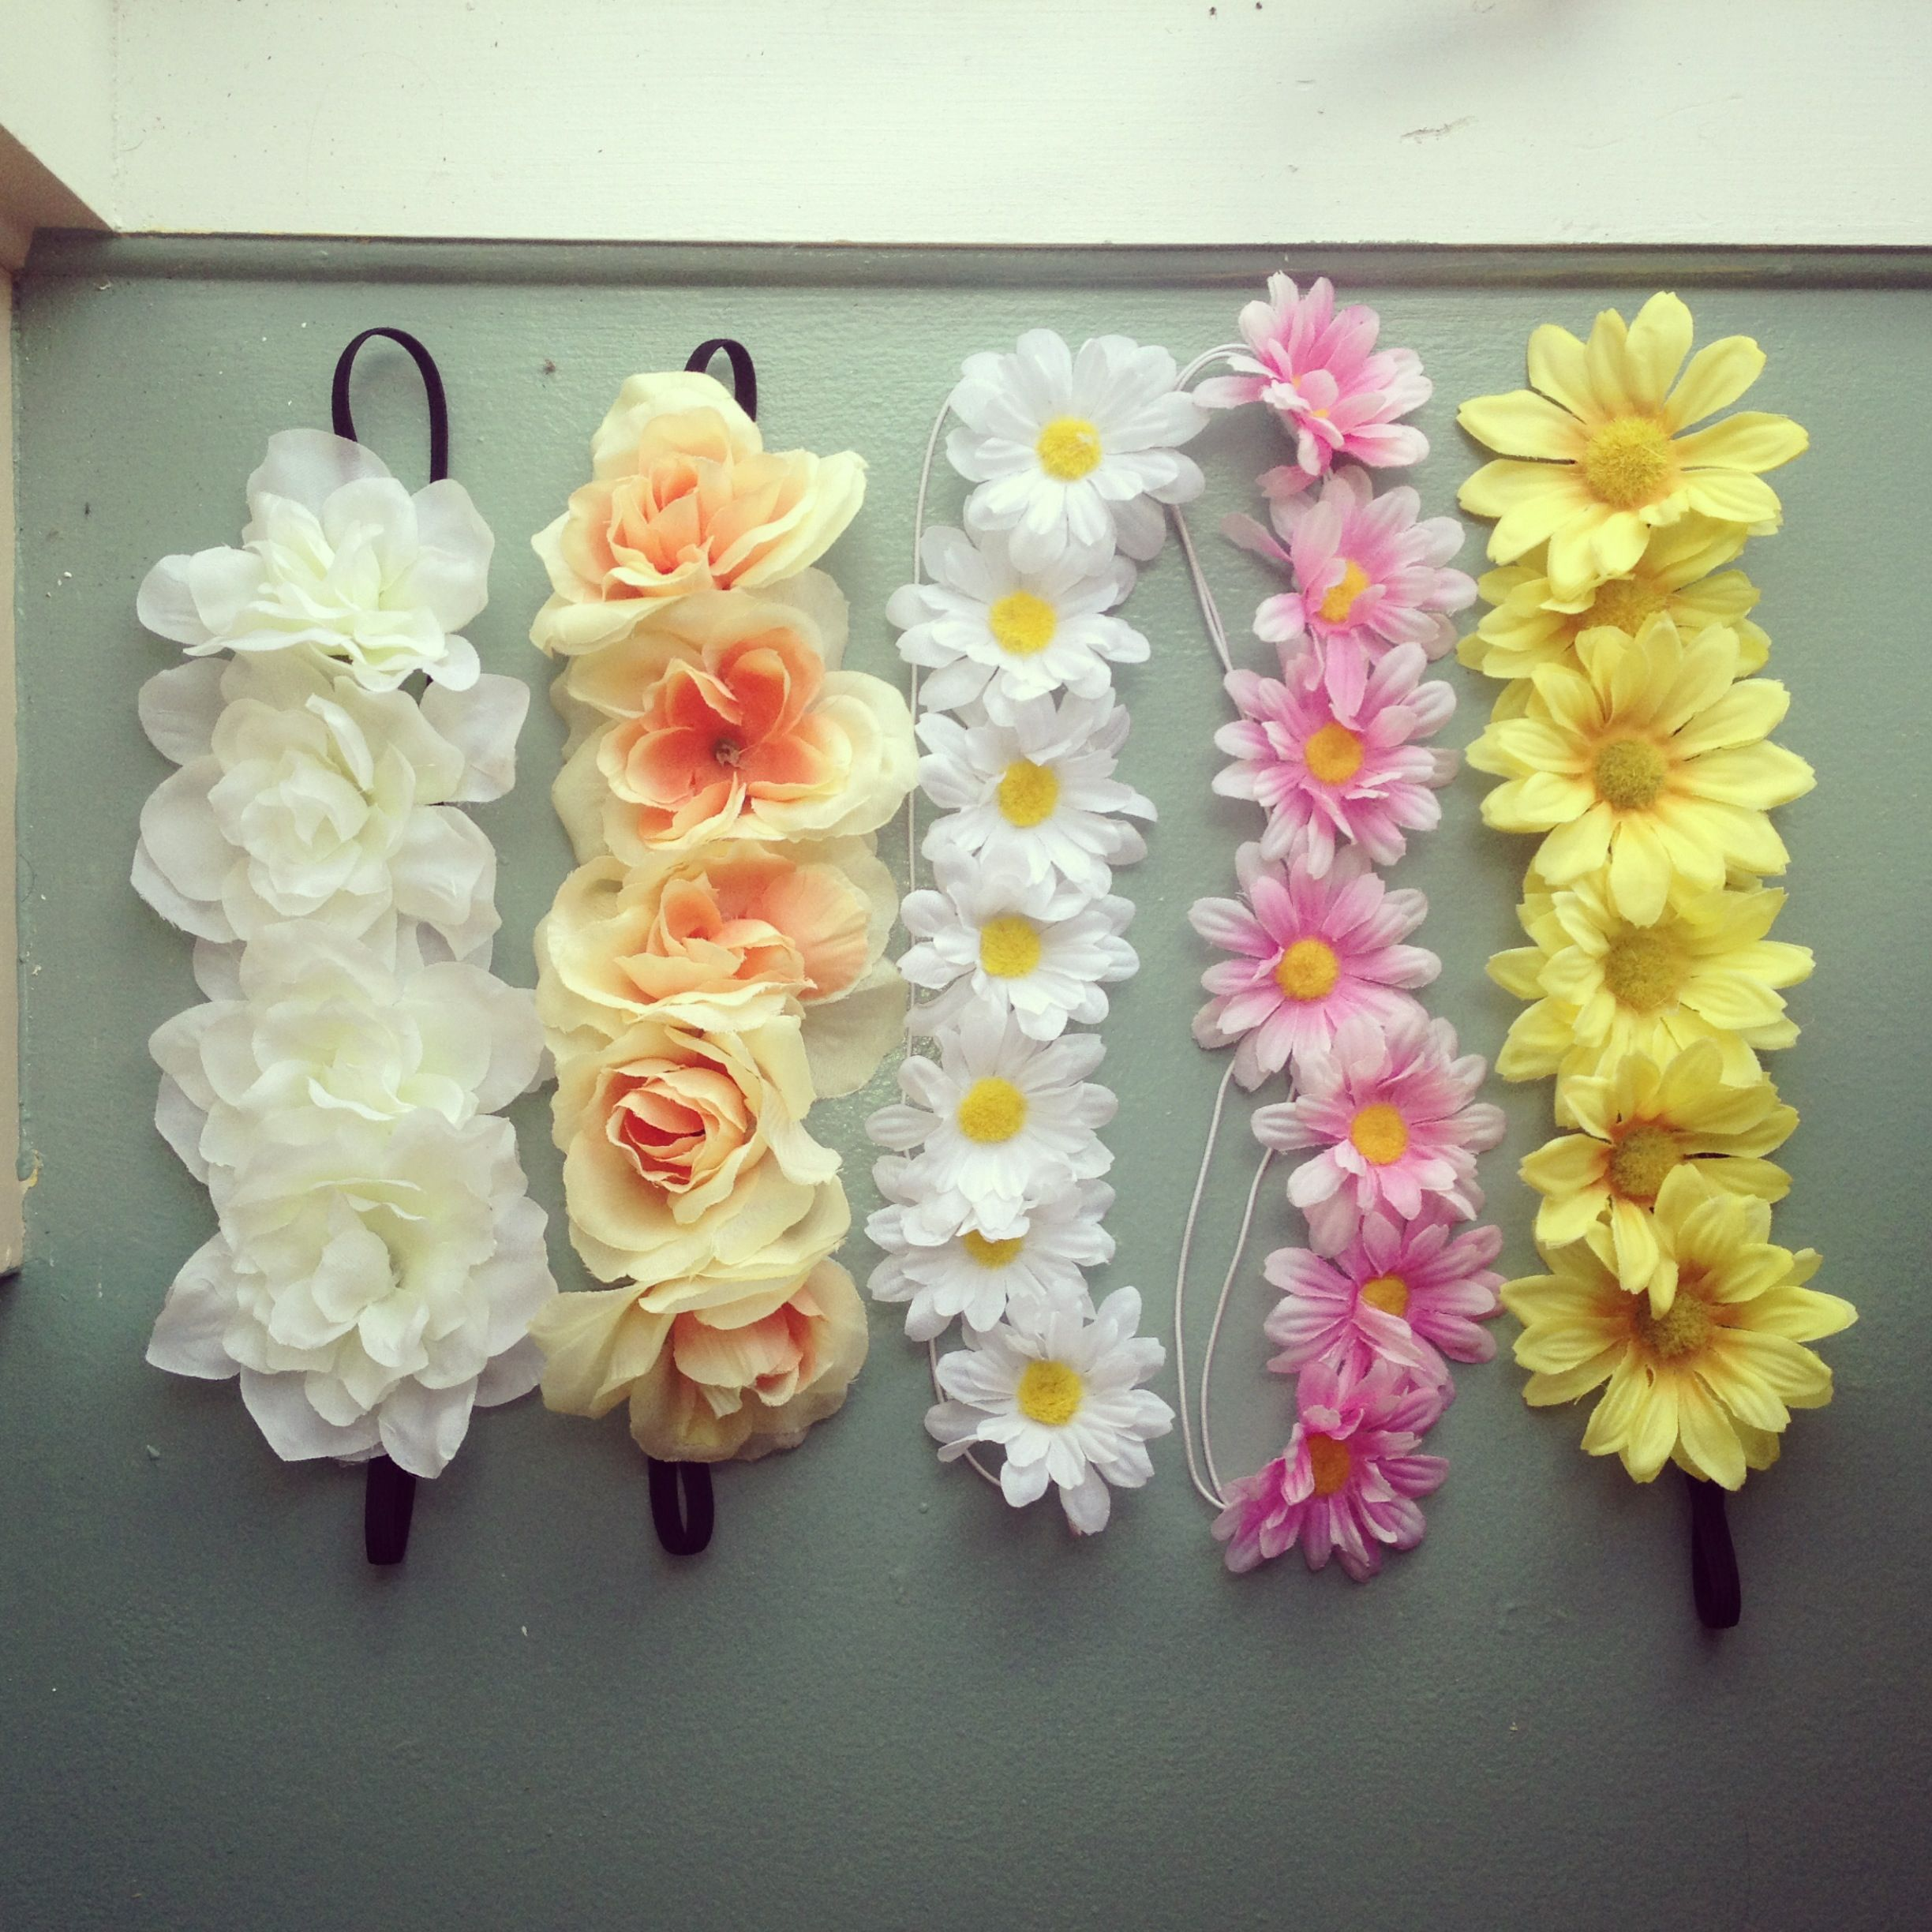 Flower Headbands always wanted one -plastic flowers -hot glue -elastic  headbands 5bd44f2c907